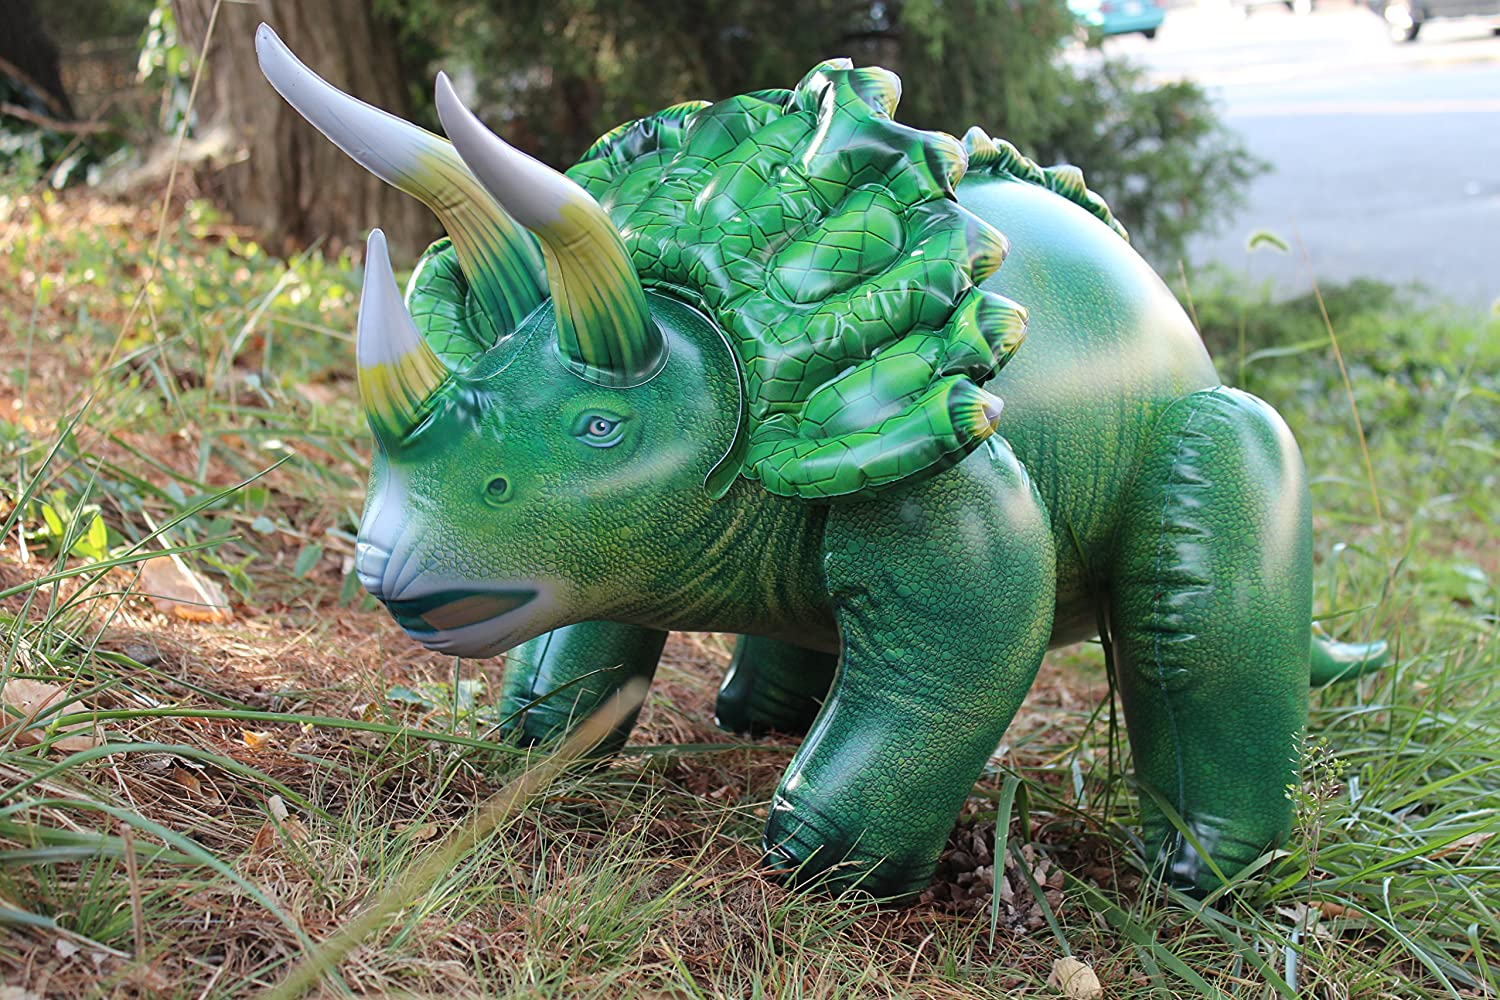 Dinosaur Lawn Decorations Amazoncom Inflatable Triceratops Toys Games